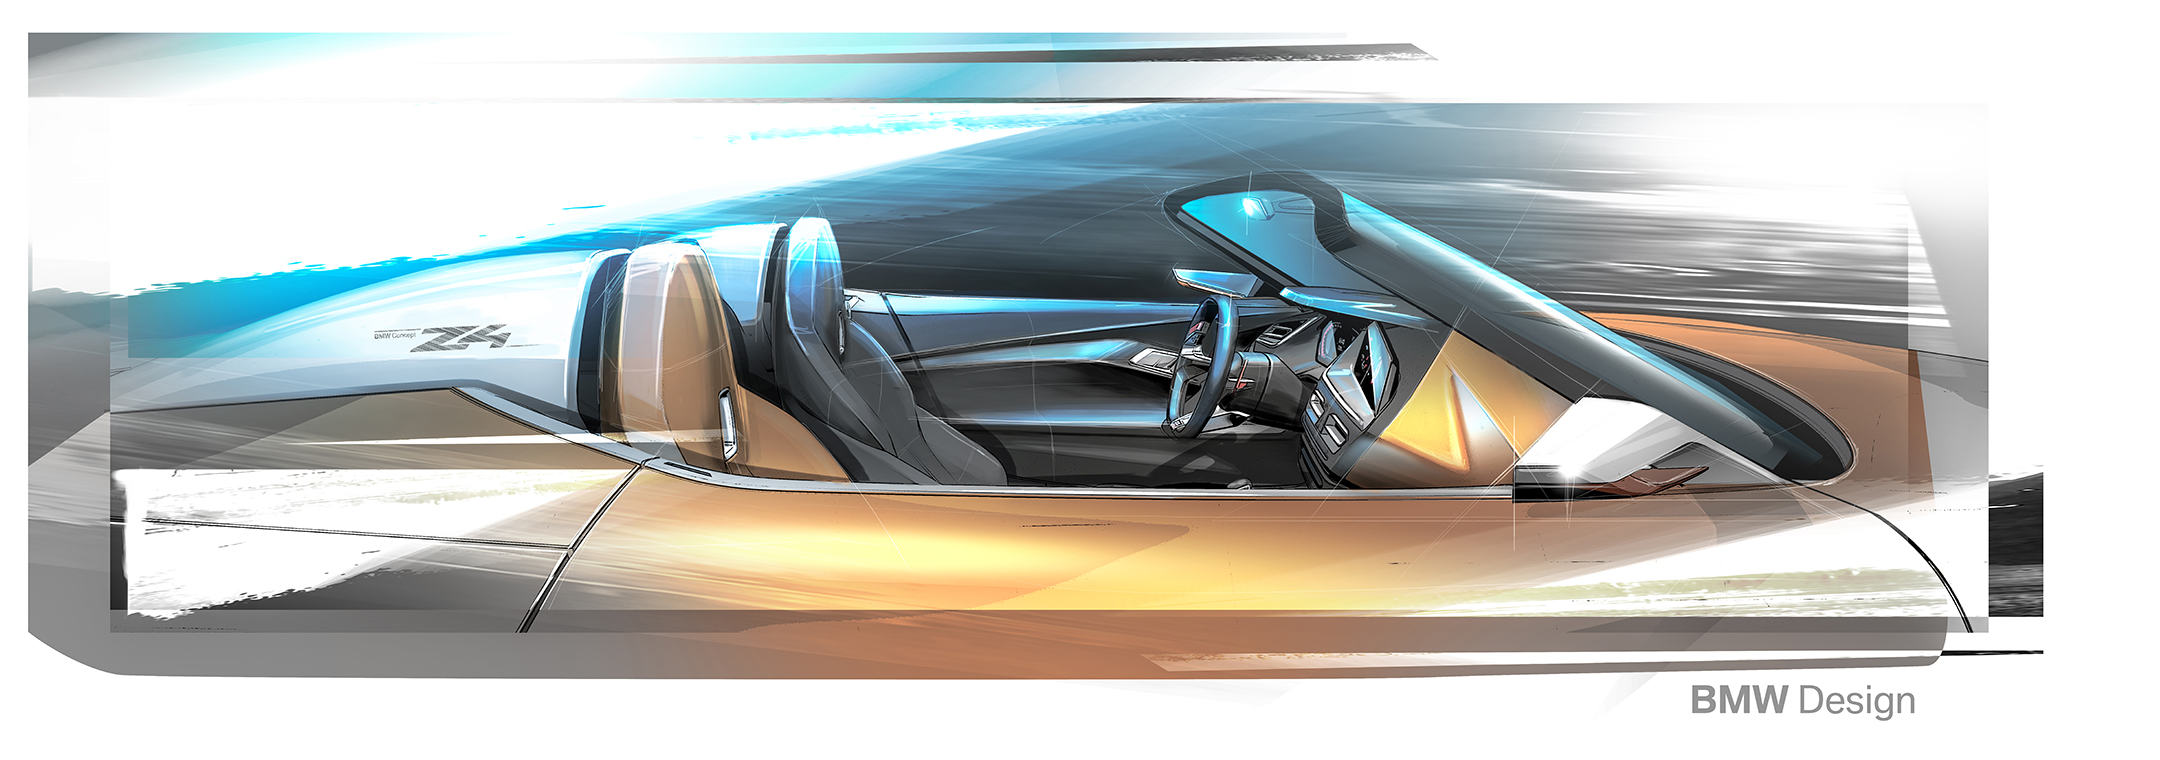 BMW Concept Z4 - 2017 - sketch - interior / intérieur - side-face / profil